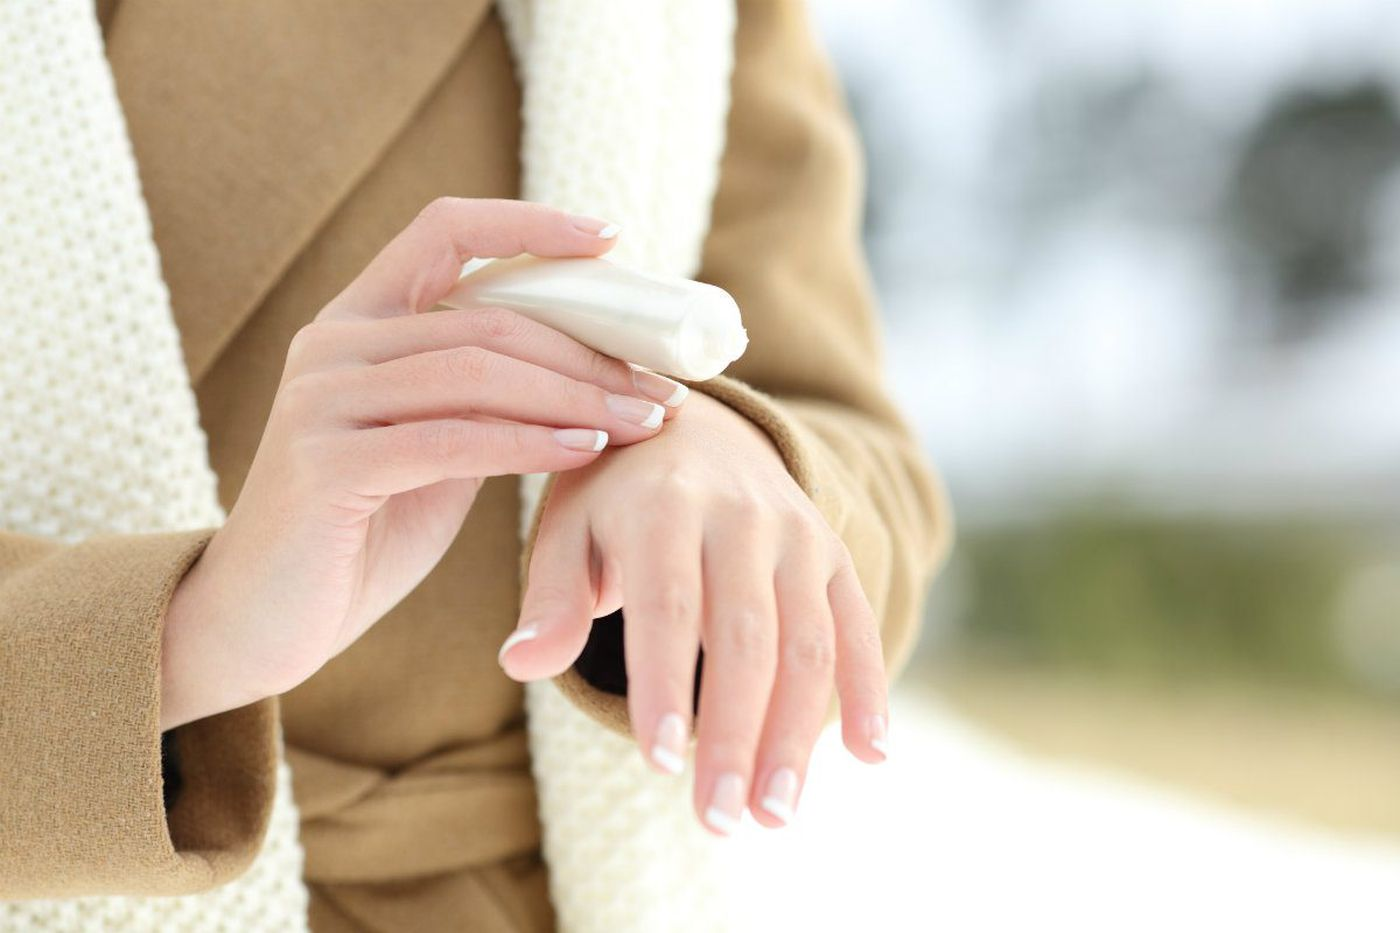 How to moisturize your dry skin, and care for your hair and nails when it's cold | Elizabeth Wellington